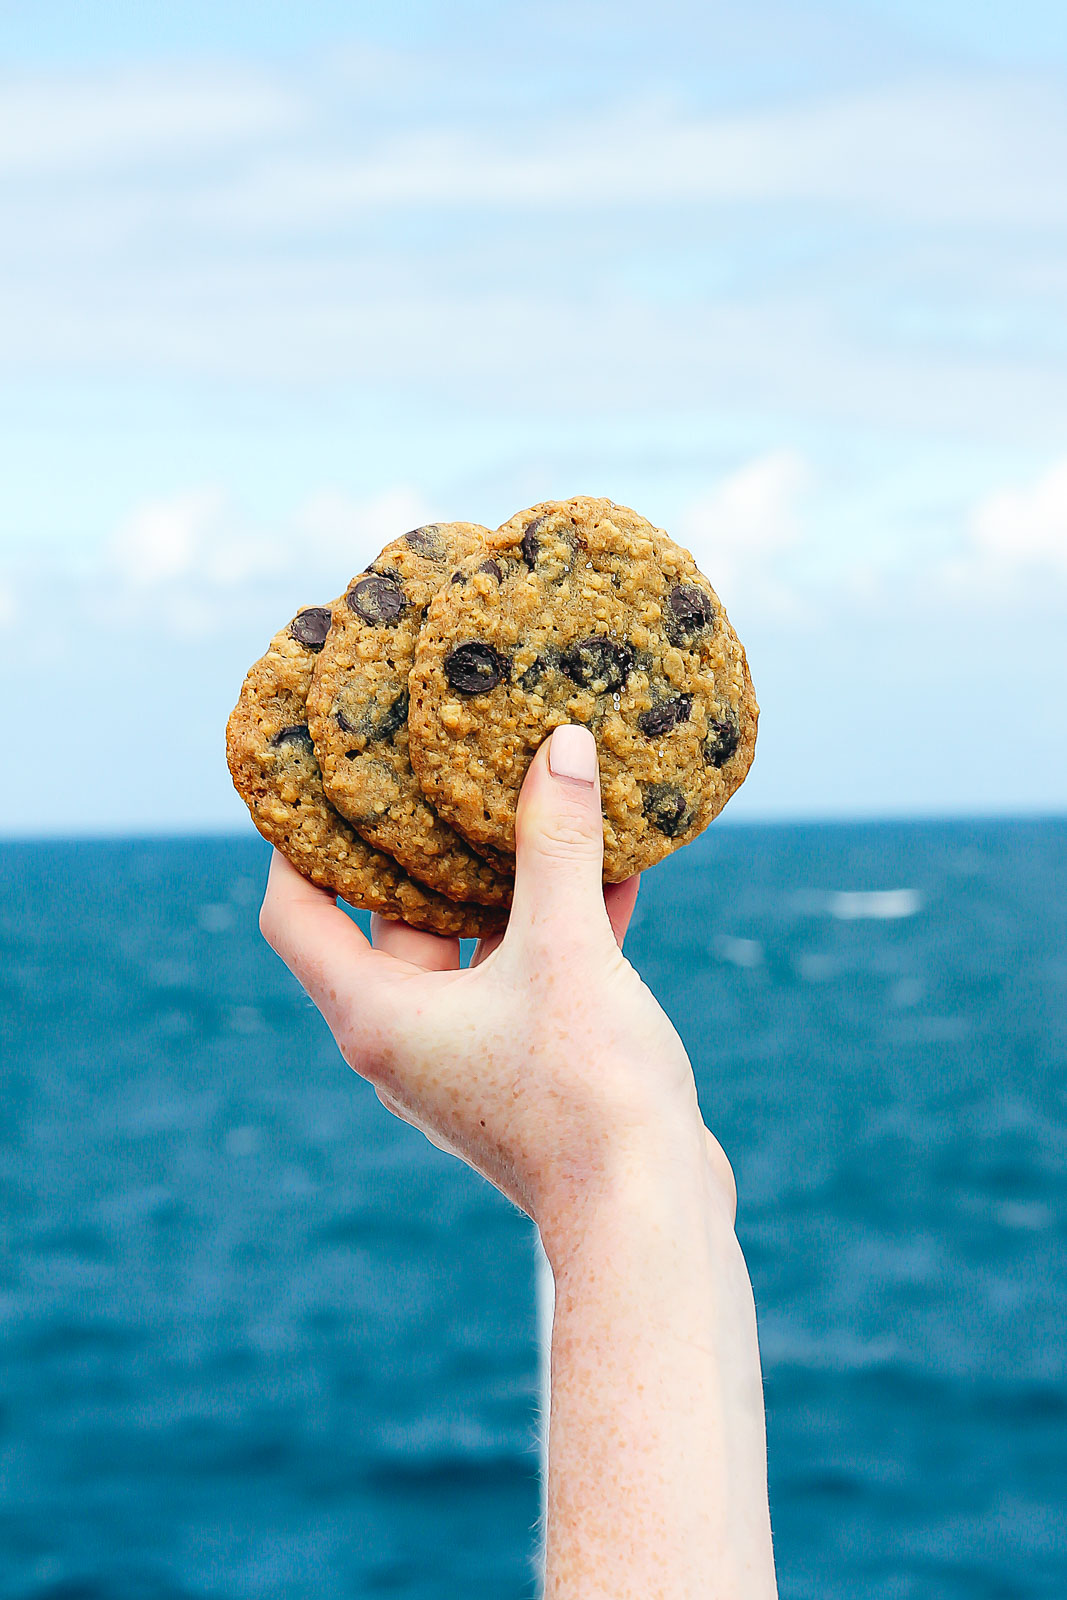 holding cookies in the air over the ocean